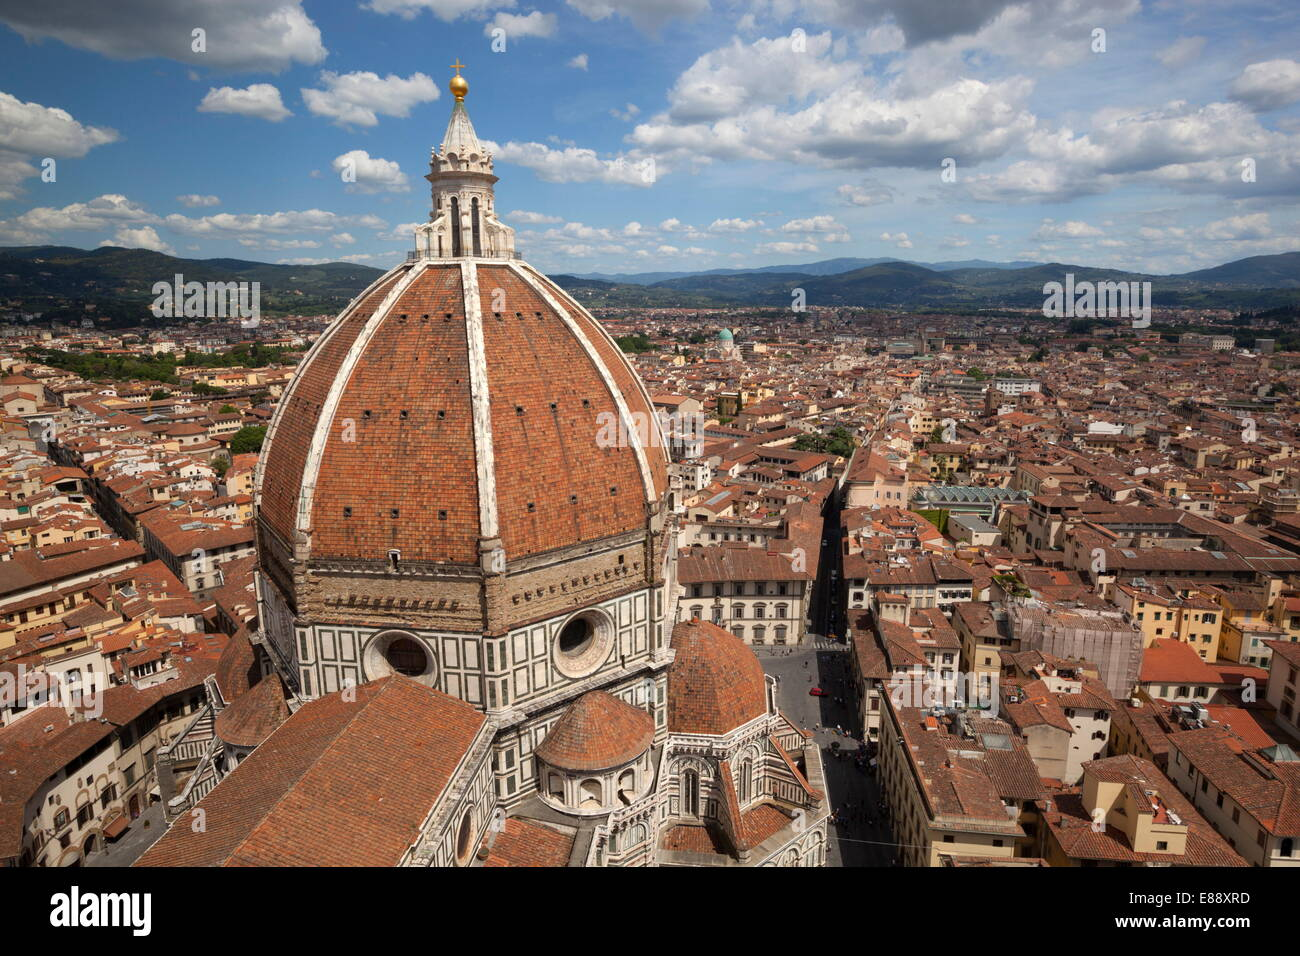 View over the Duomo and city from the Campanile, Florence, UNESCO World Heritage Site, Tuscany, Italy, Europe - Stock Image